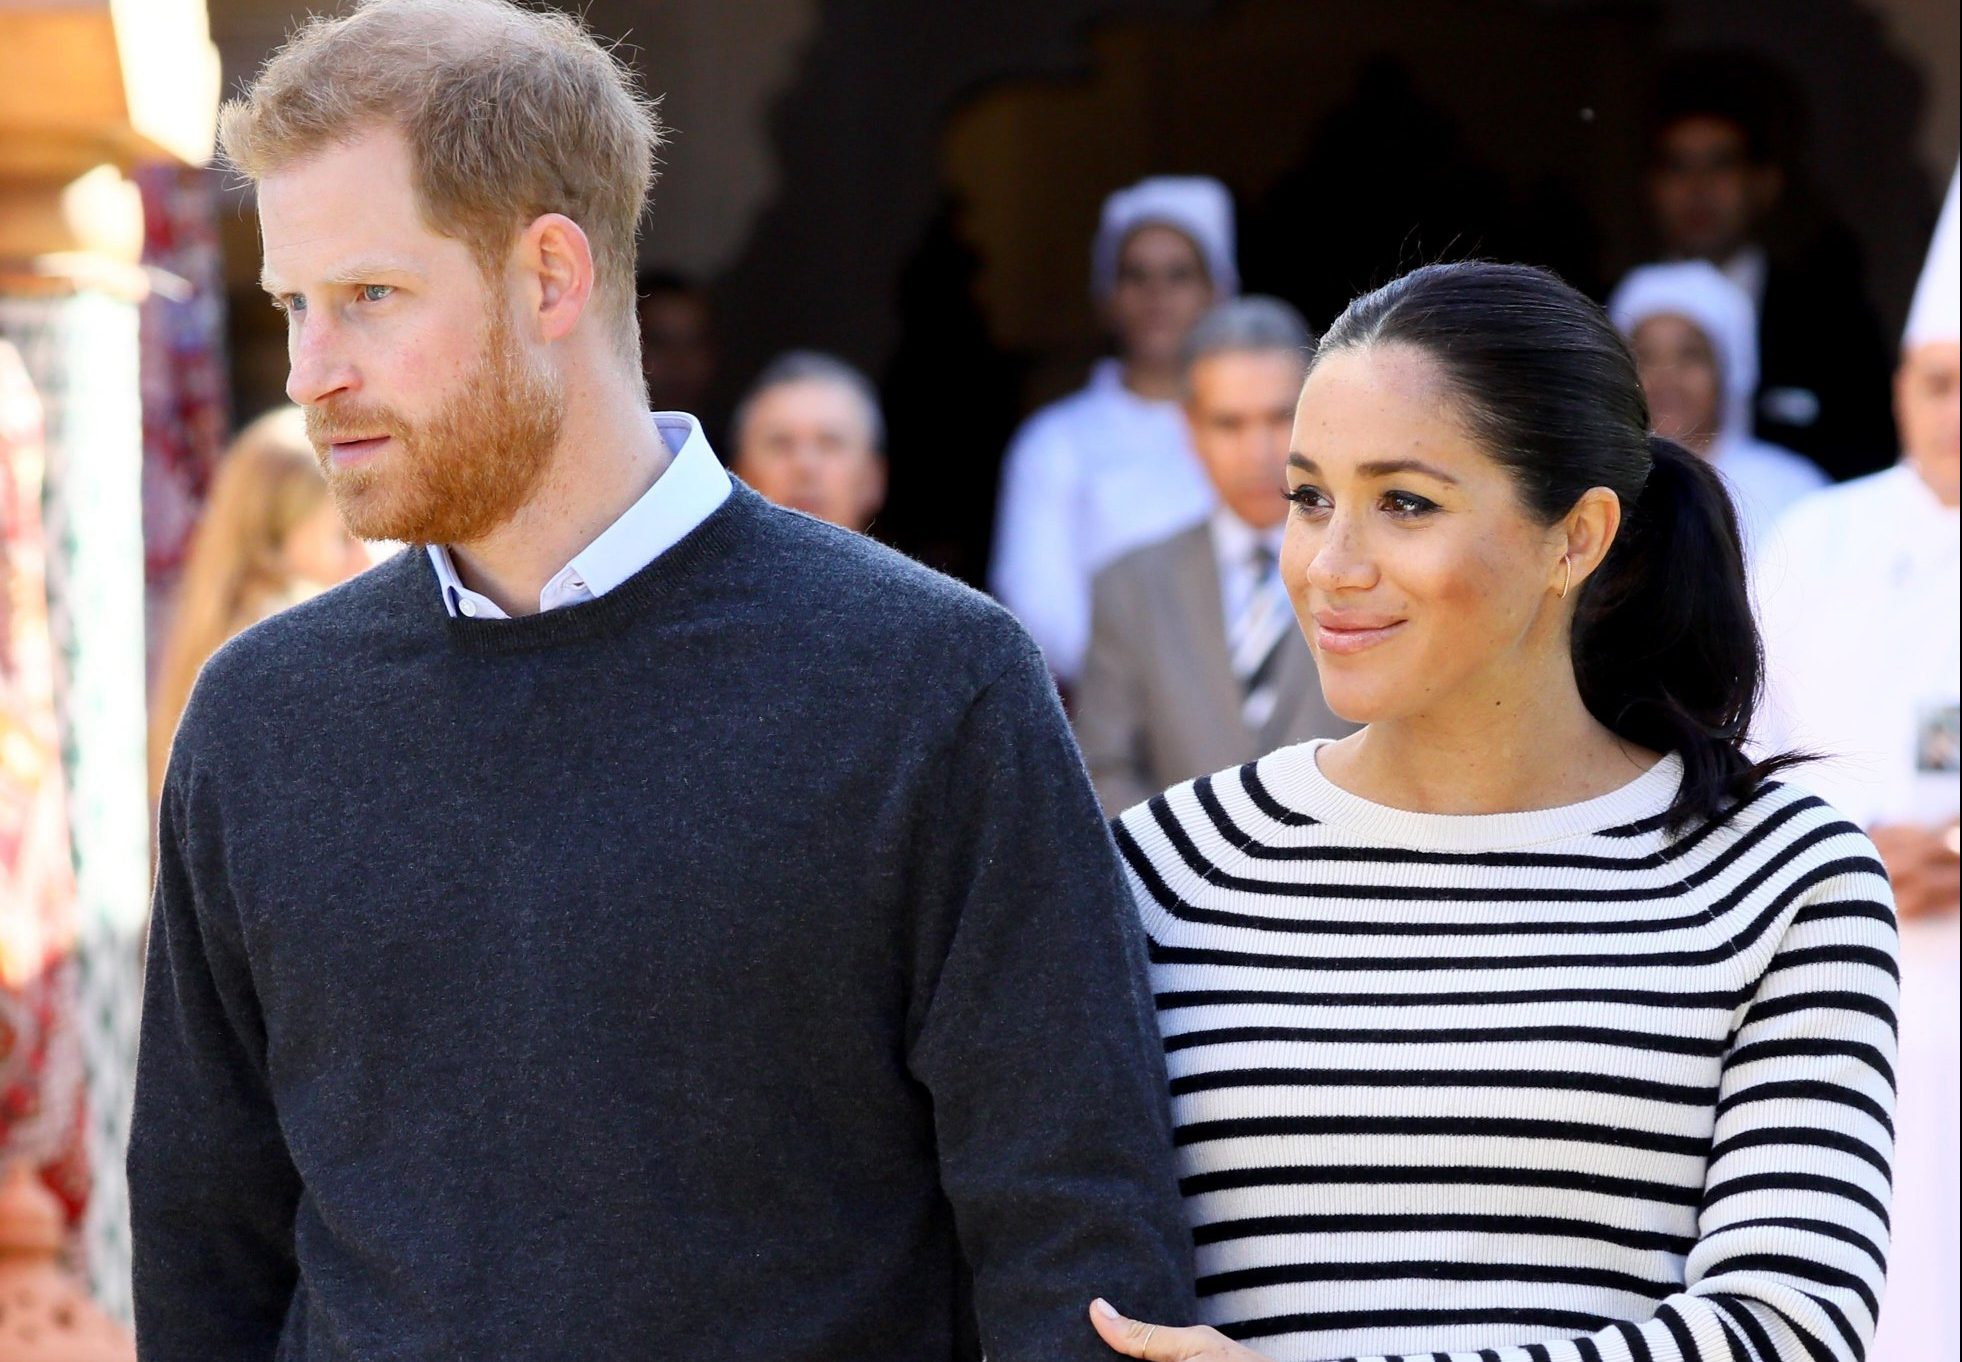 When is pregnant Meghan Markle going on maternity leave and how long does she have off work?